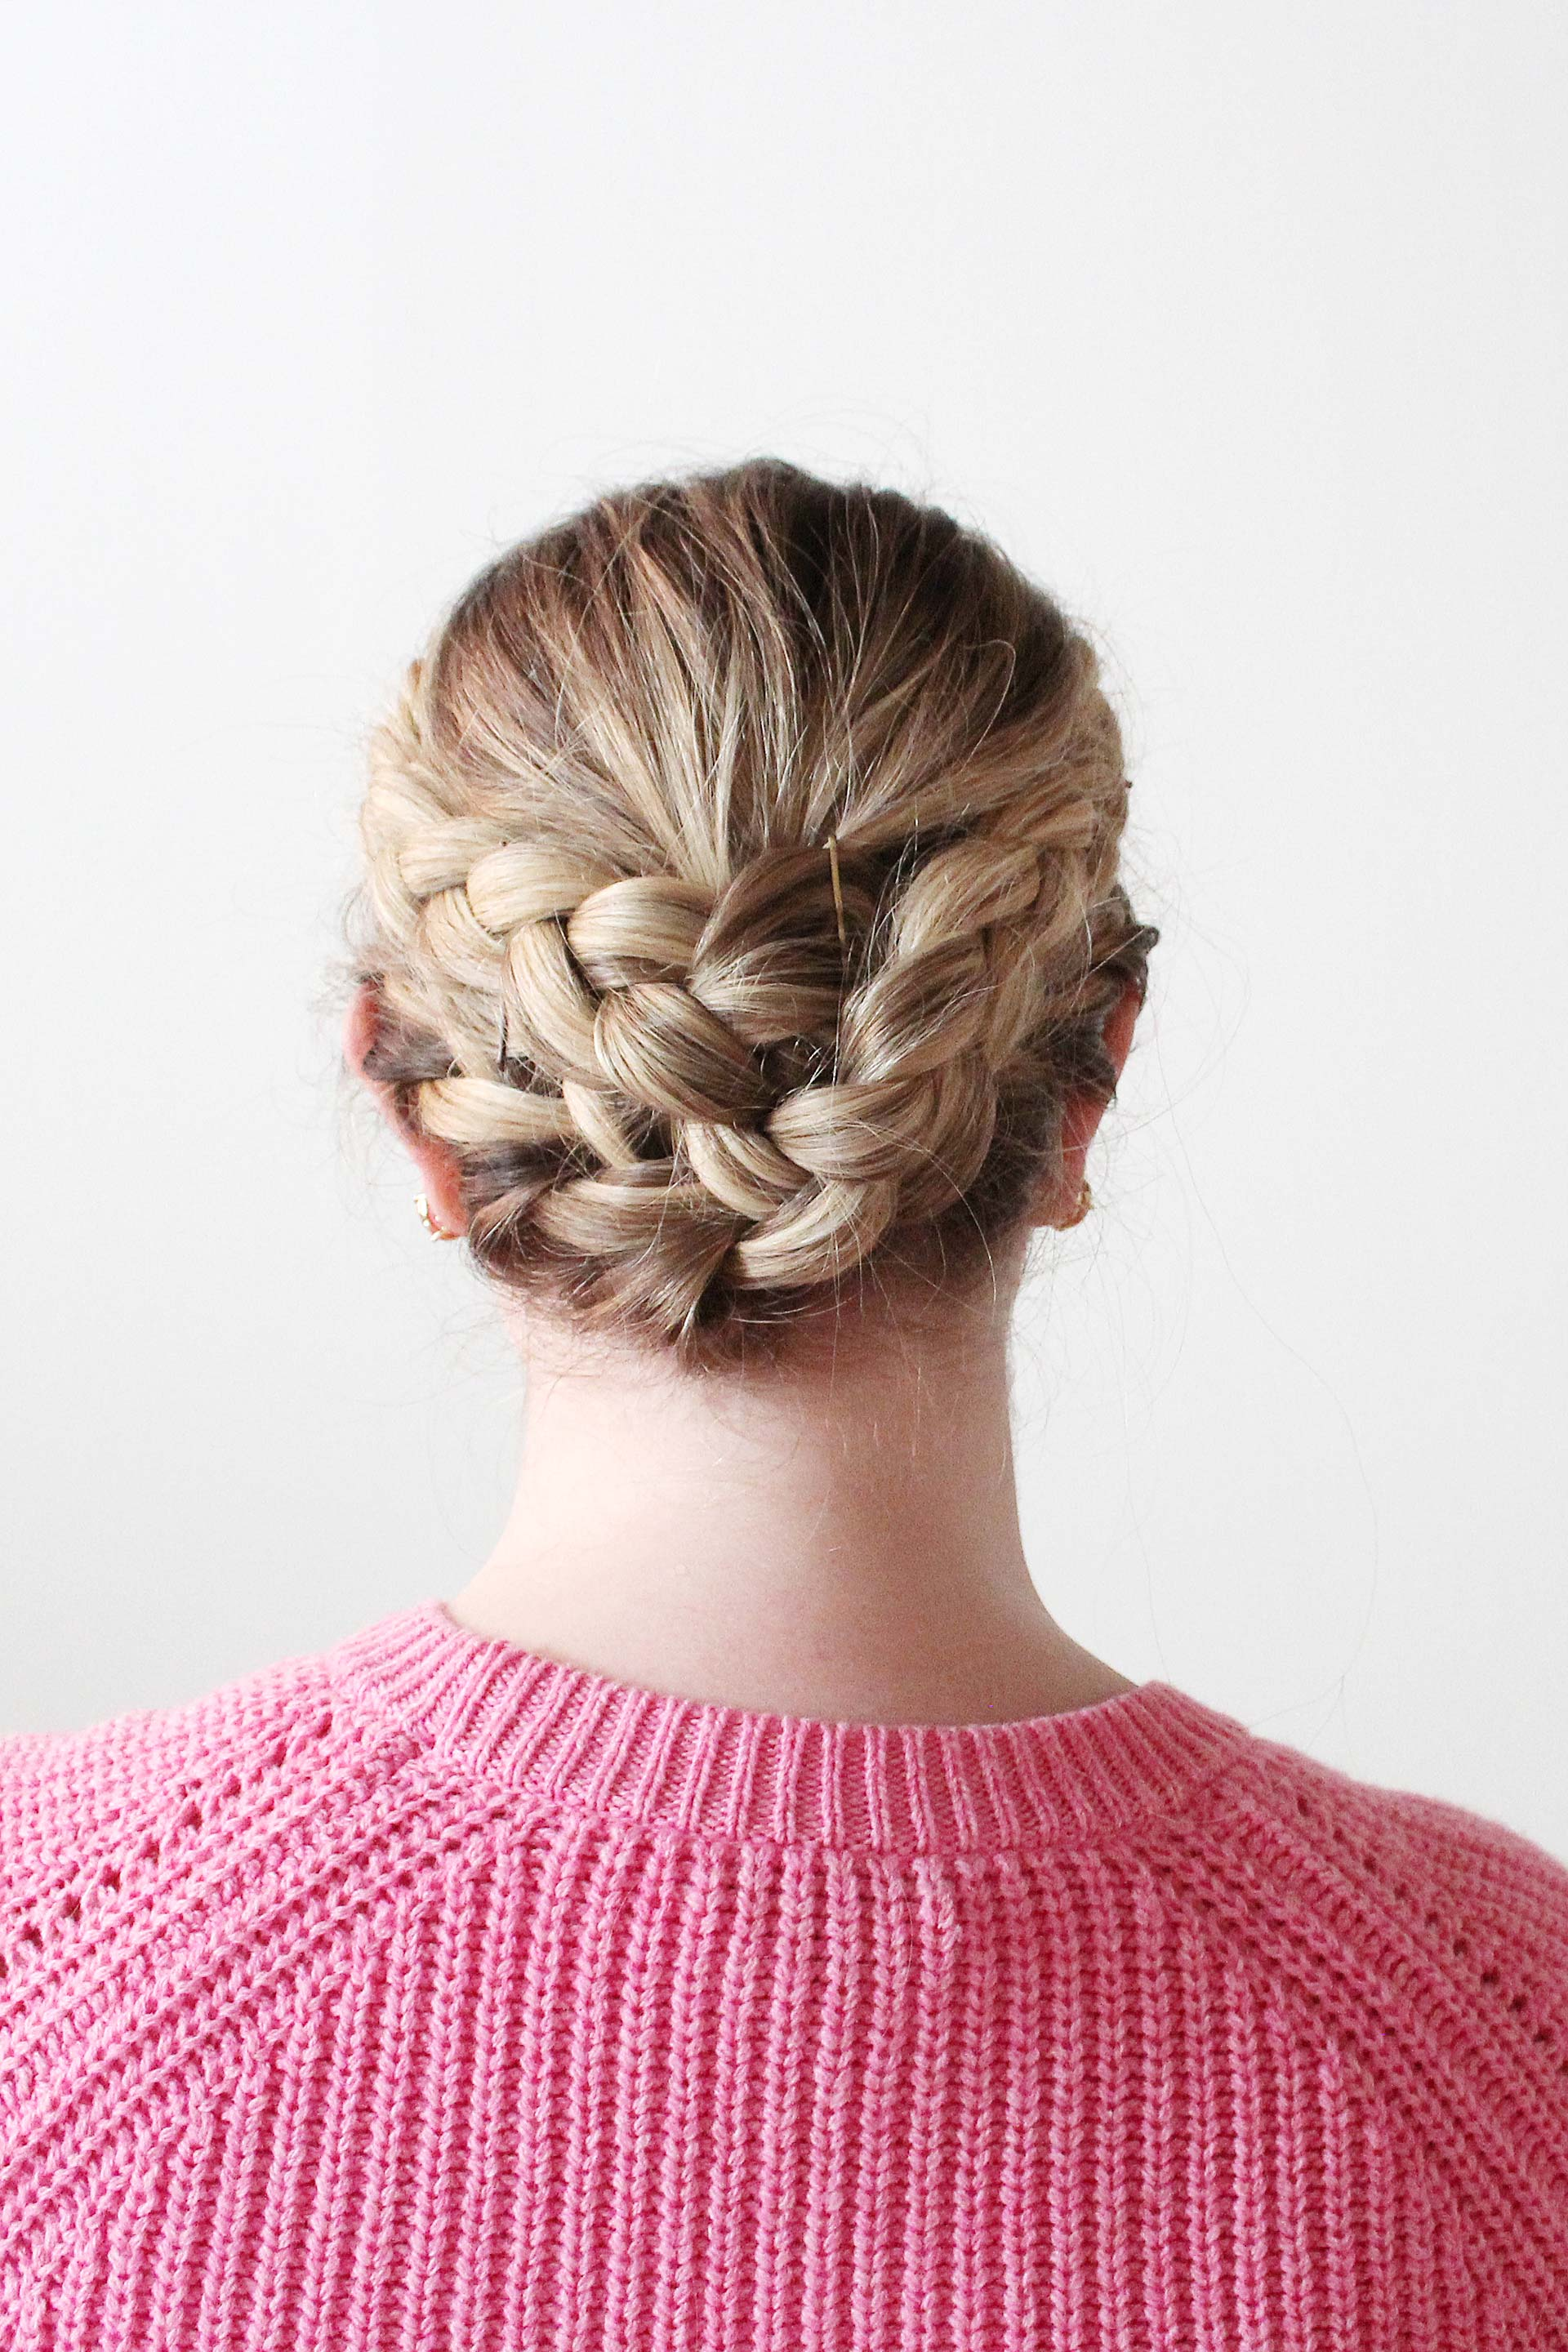 Hair How-To: French Crown Braid Tutorial | Alexandra Adams